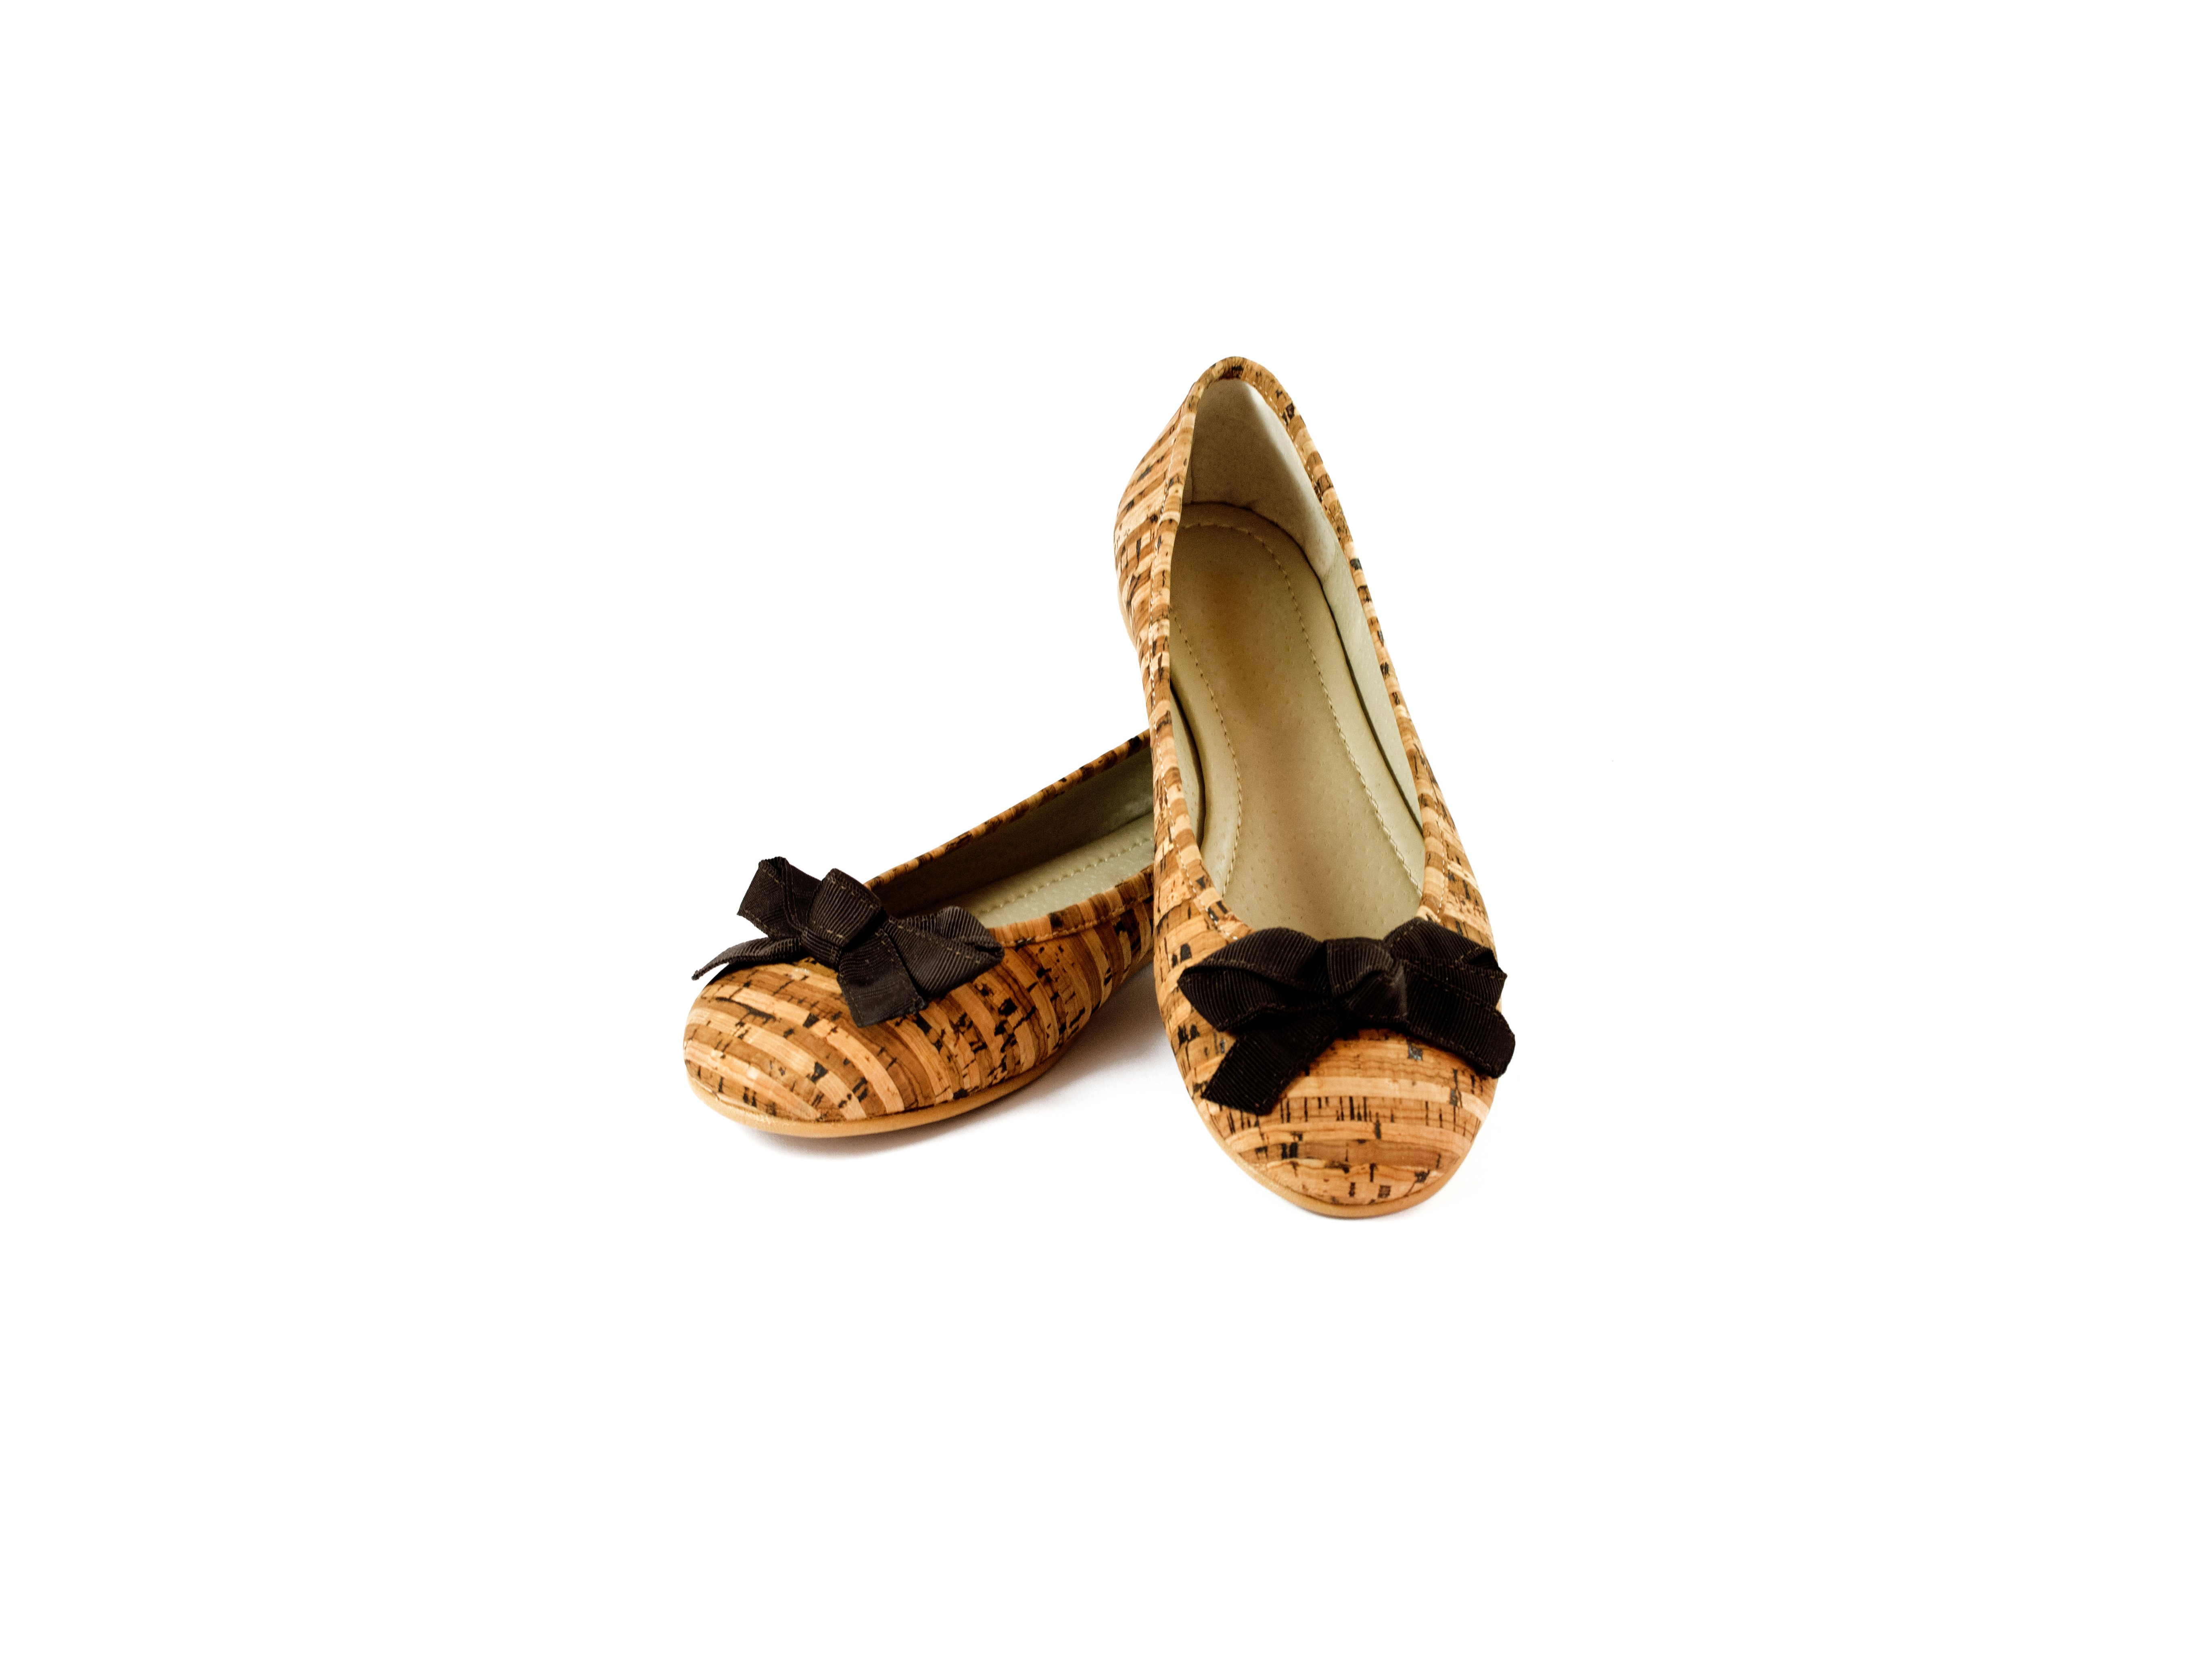 Buy cork shoes bl. Buy cork shoes bl in Spain. Buy cork shoes bl in Portugal. Buy cork shoes bl in the Canary Islands